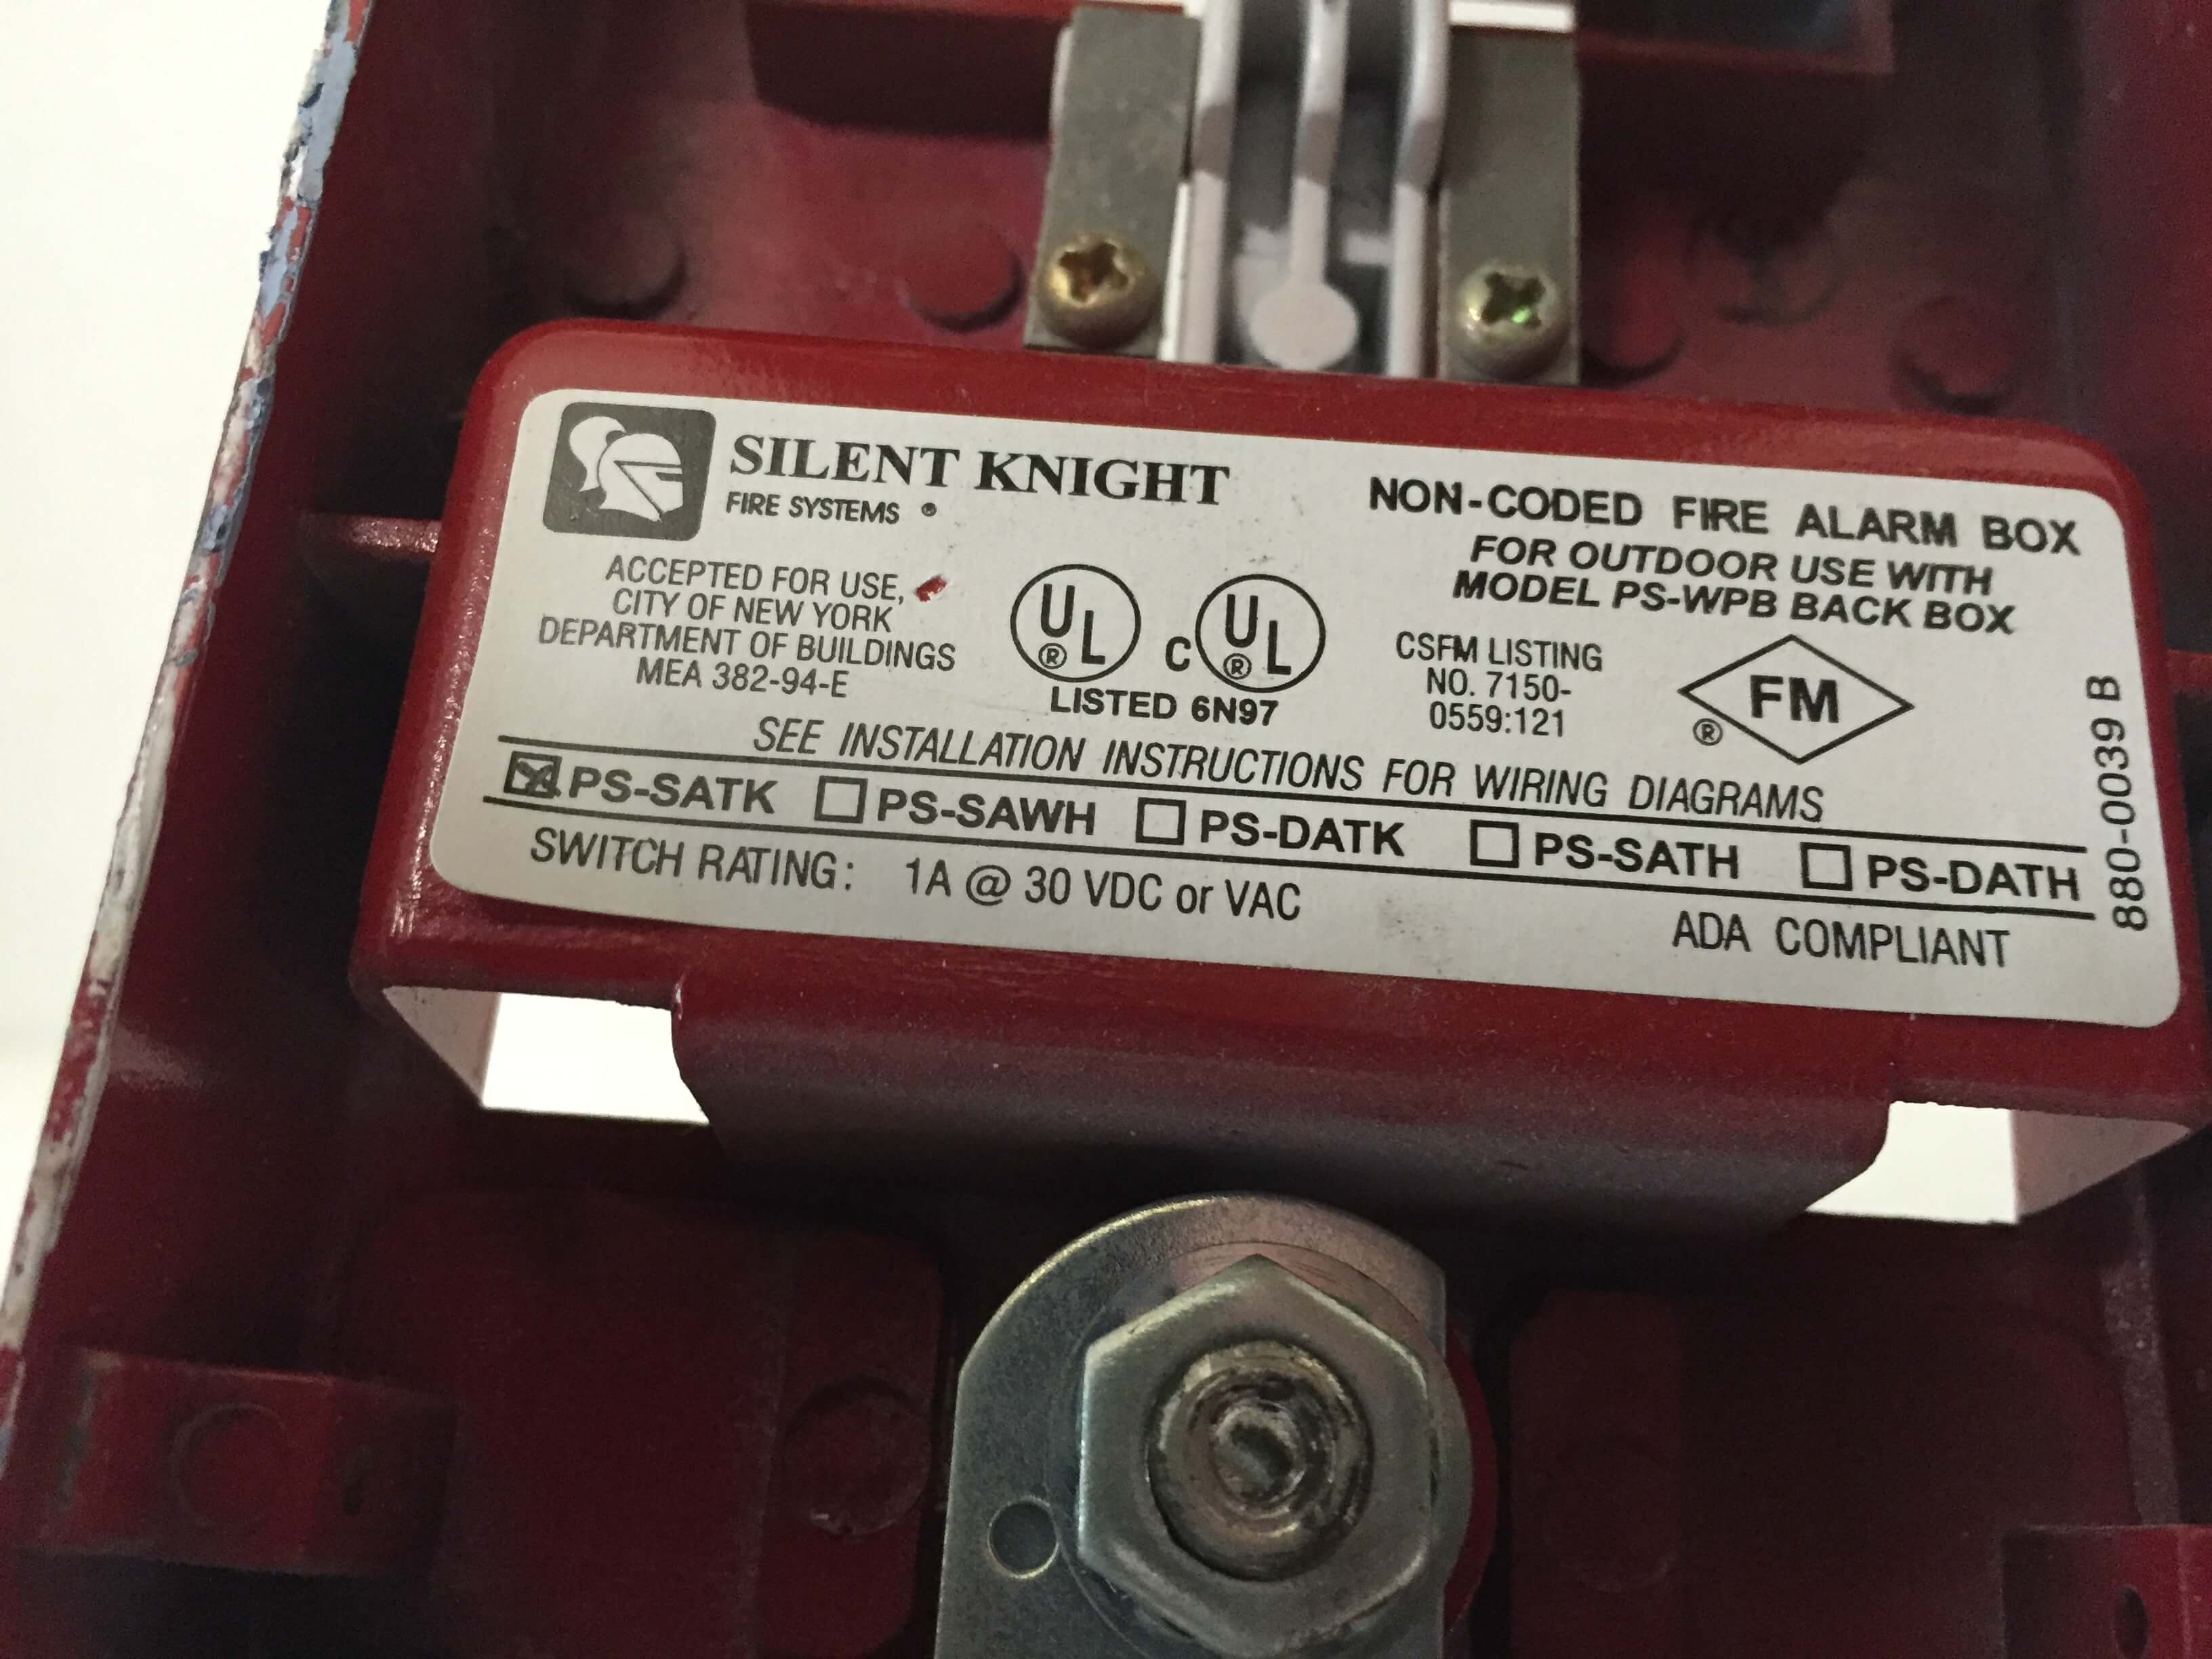 Silent Knight Wiring Diagrams Schematic Ops Ps Satk Firealarms Tv Jjinc24 U8ol0s Fire Alarm A Potentiometer For Motor